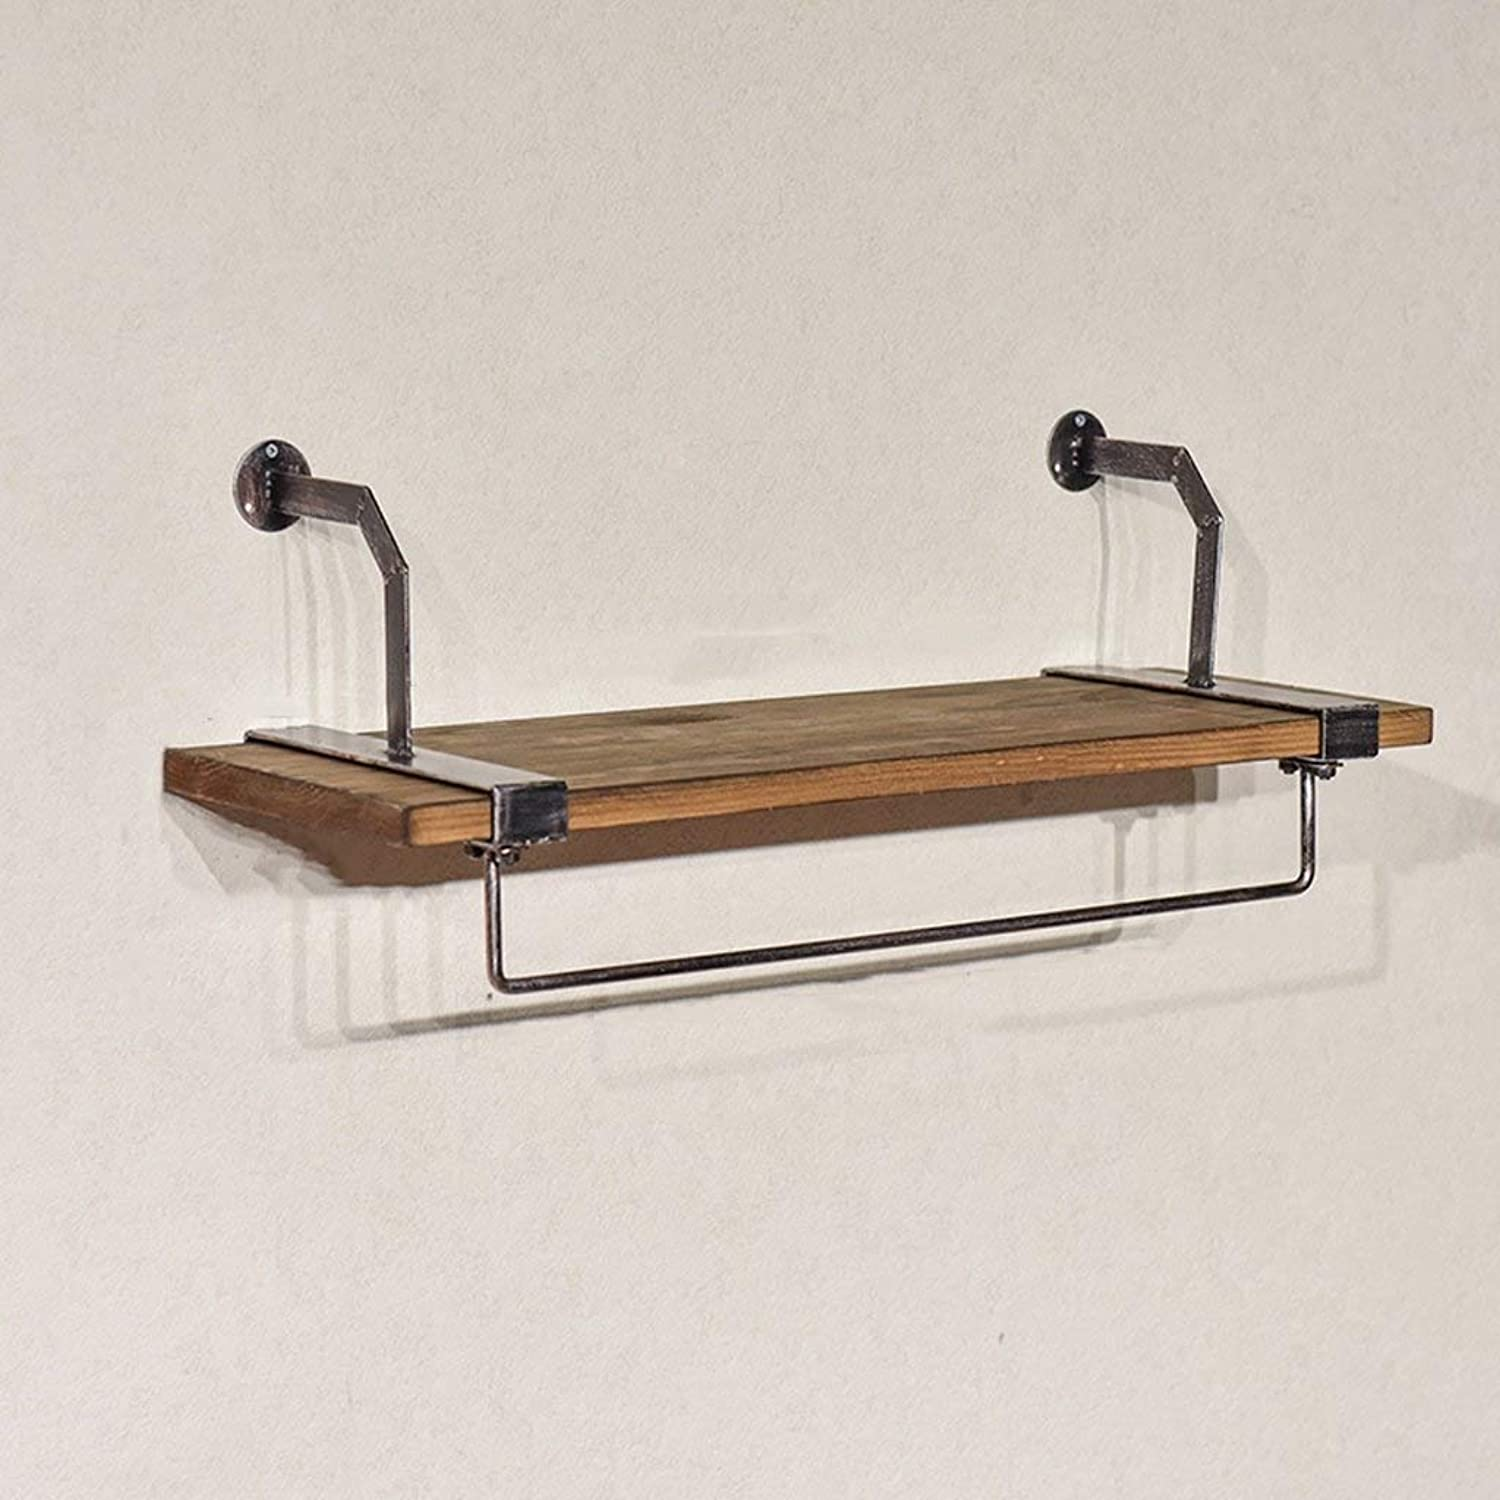 Shelf 2 in 1 Vintage Iron Wall Hook Hook Solid Wooden Wall Shelf Combination Clothing Rack Living Room Bedroom Study Cloakroom (color   A, Size   100cm)